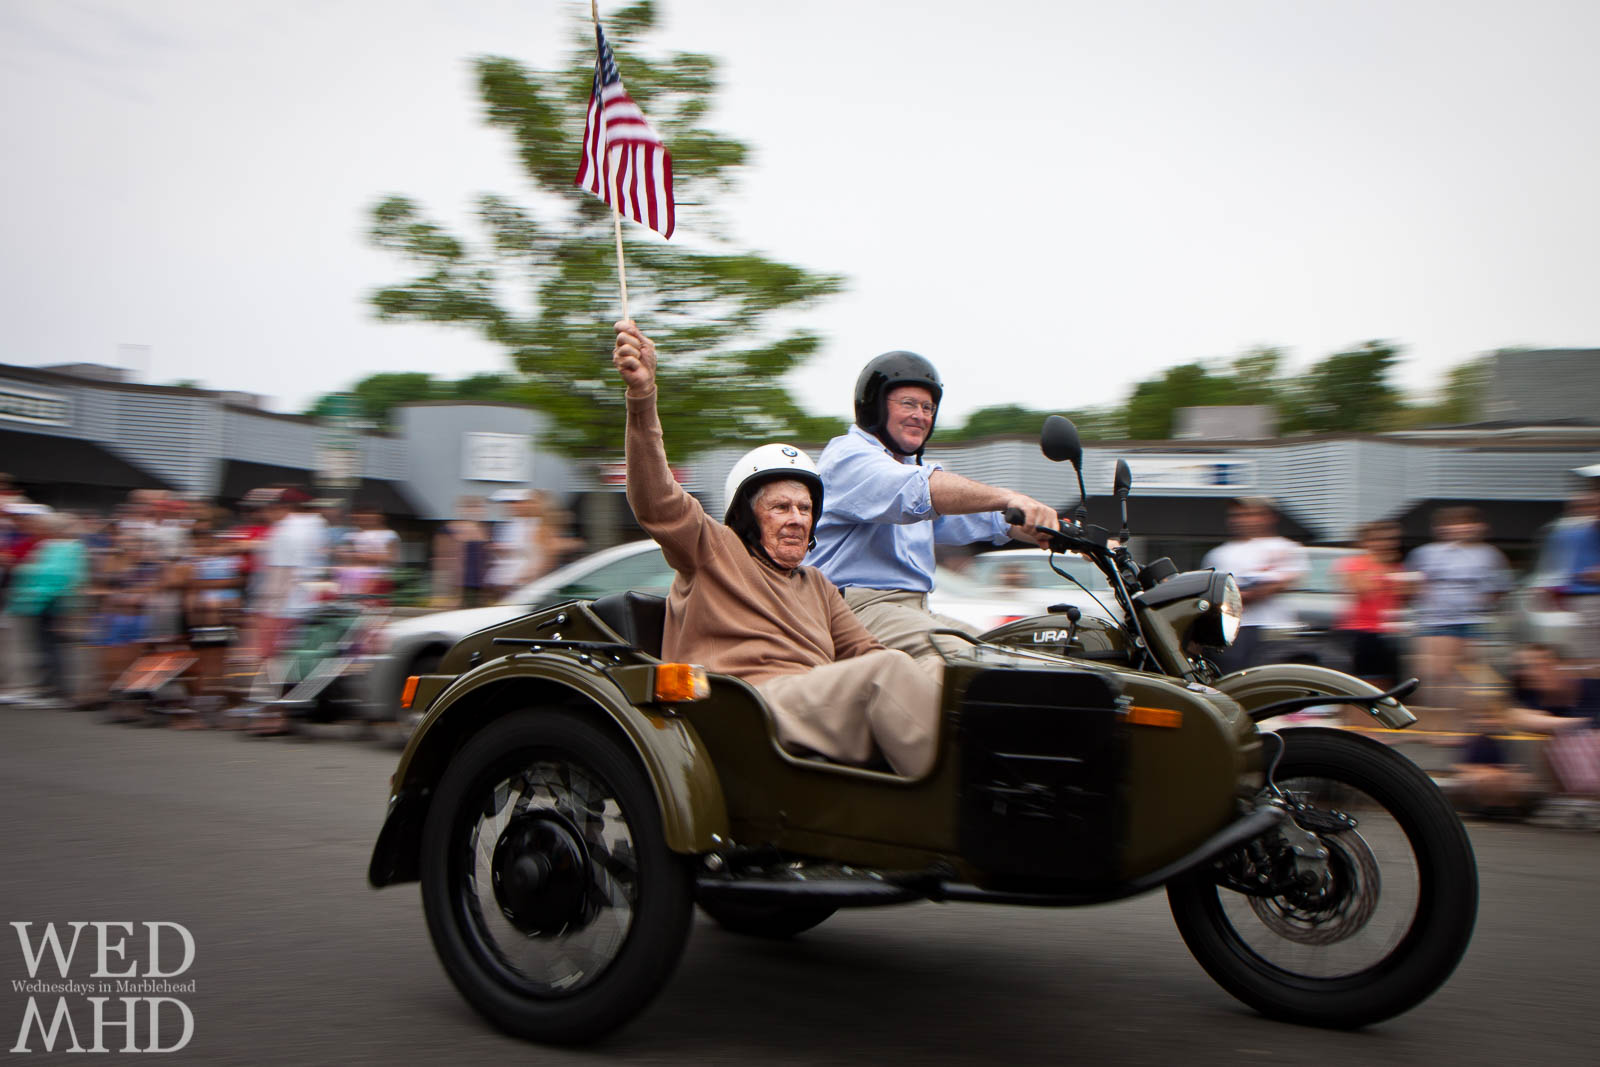 A proud veteran rides in the sidecar of an antique military motorcycle during the Marblehead Memorial Day parade while raising the flag high in the air